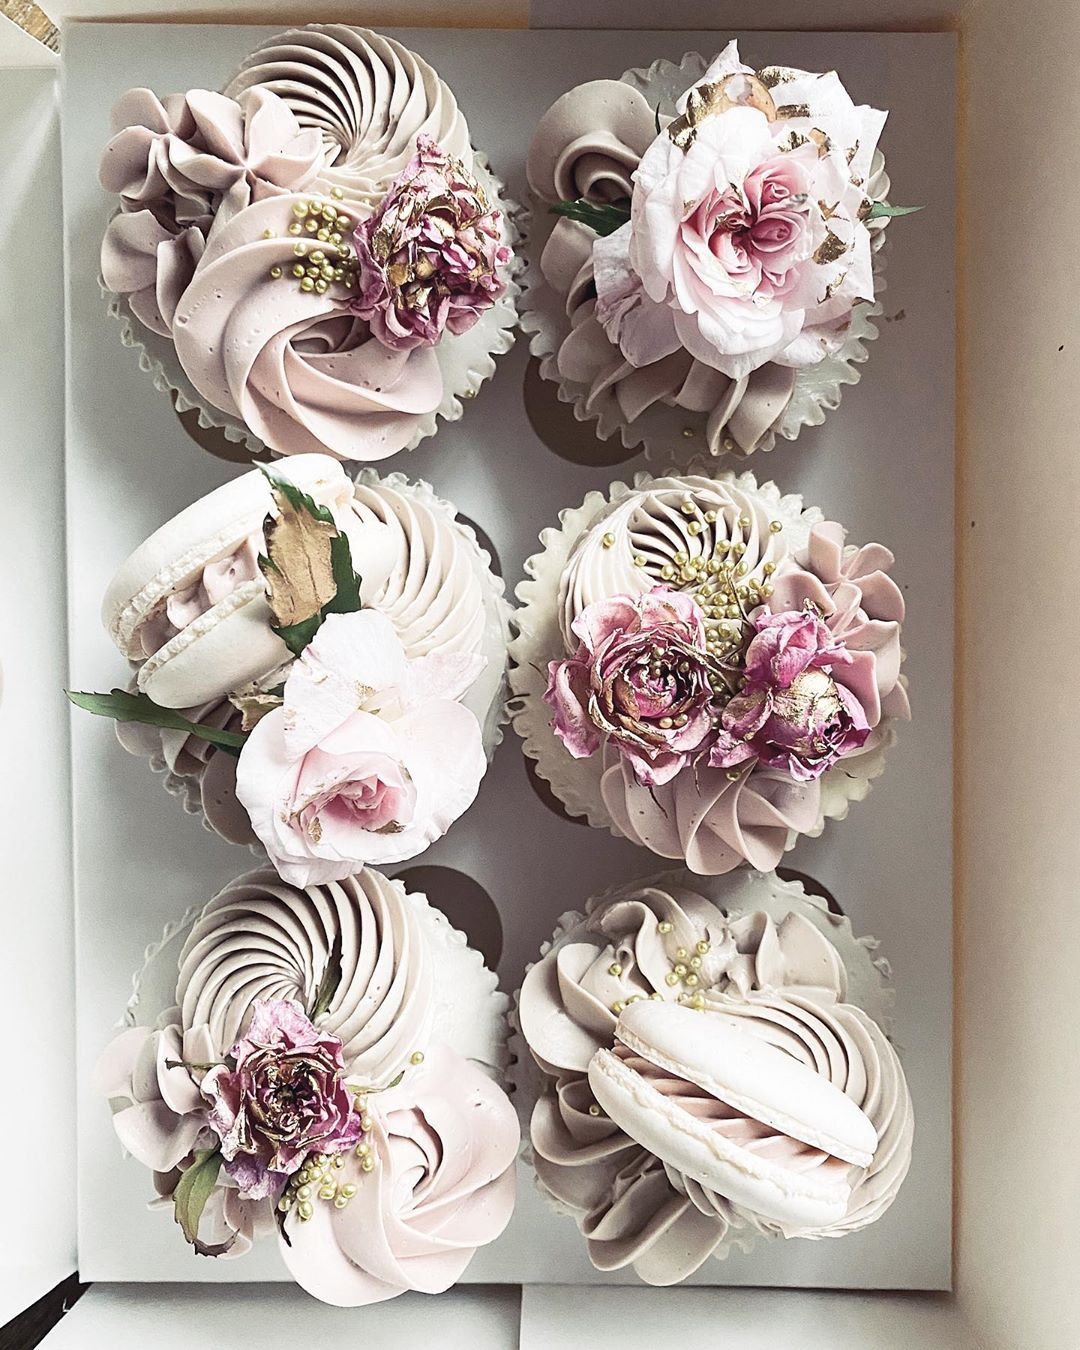 """Canberra Wedding Cakes on Instagram """"🤍🧁🤍 edible blooms"""